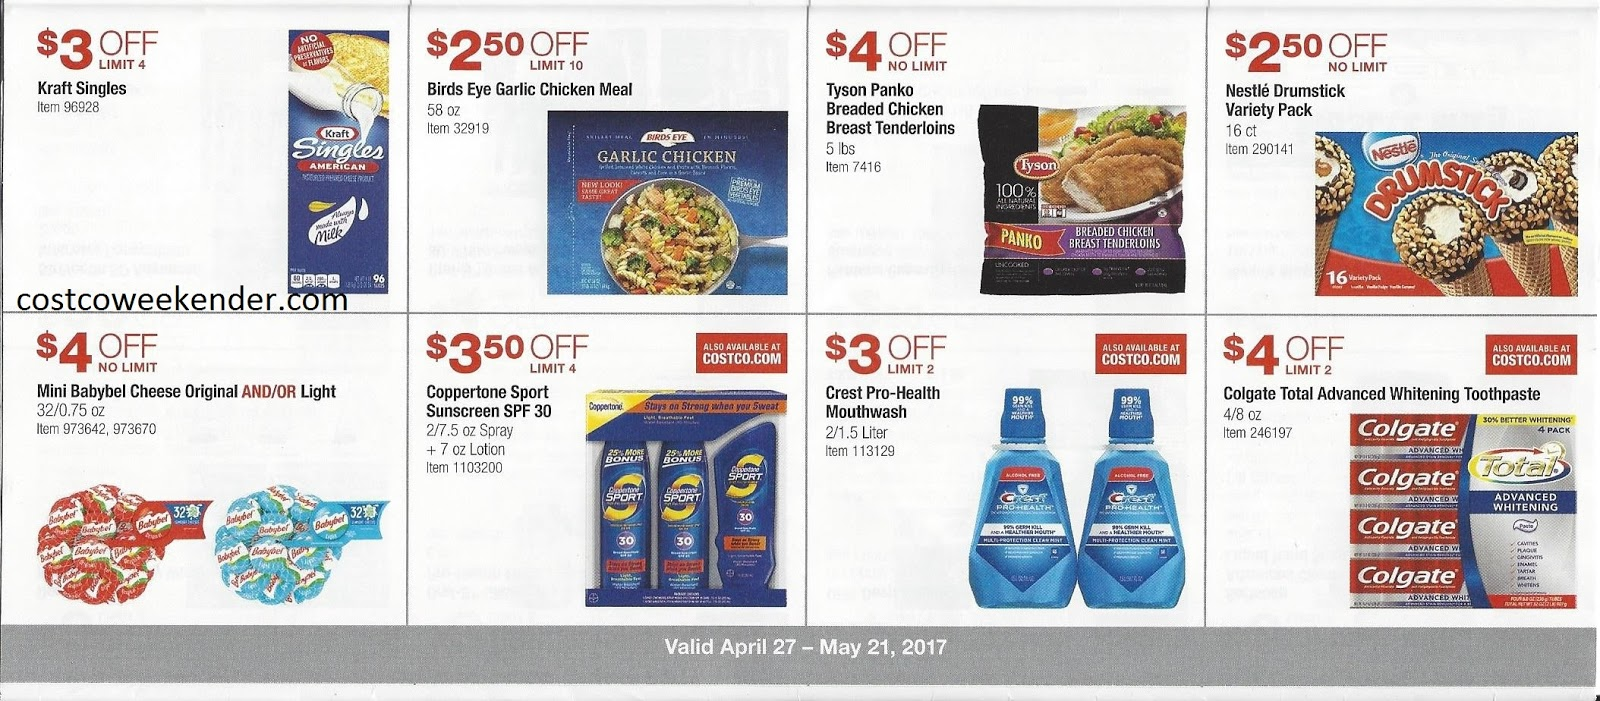 Costco Coupon Book 2018 May Cablevision Deals For Existing